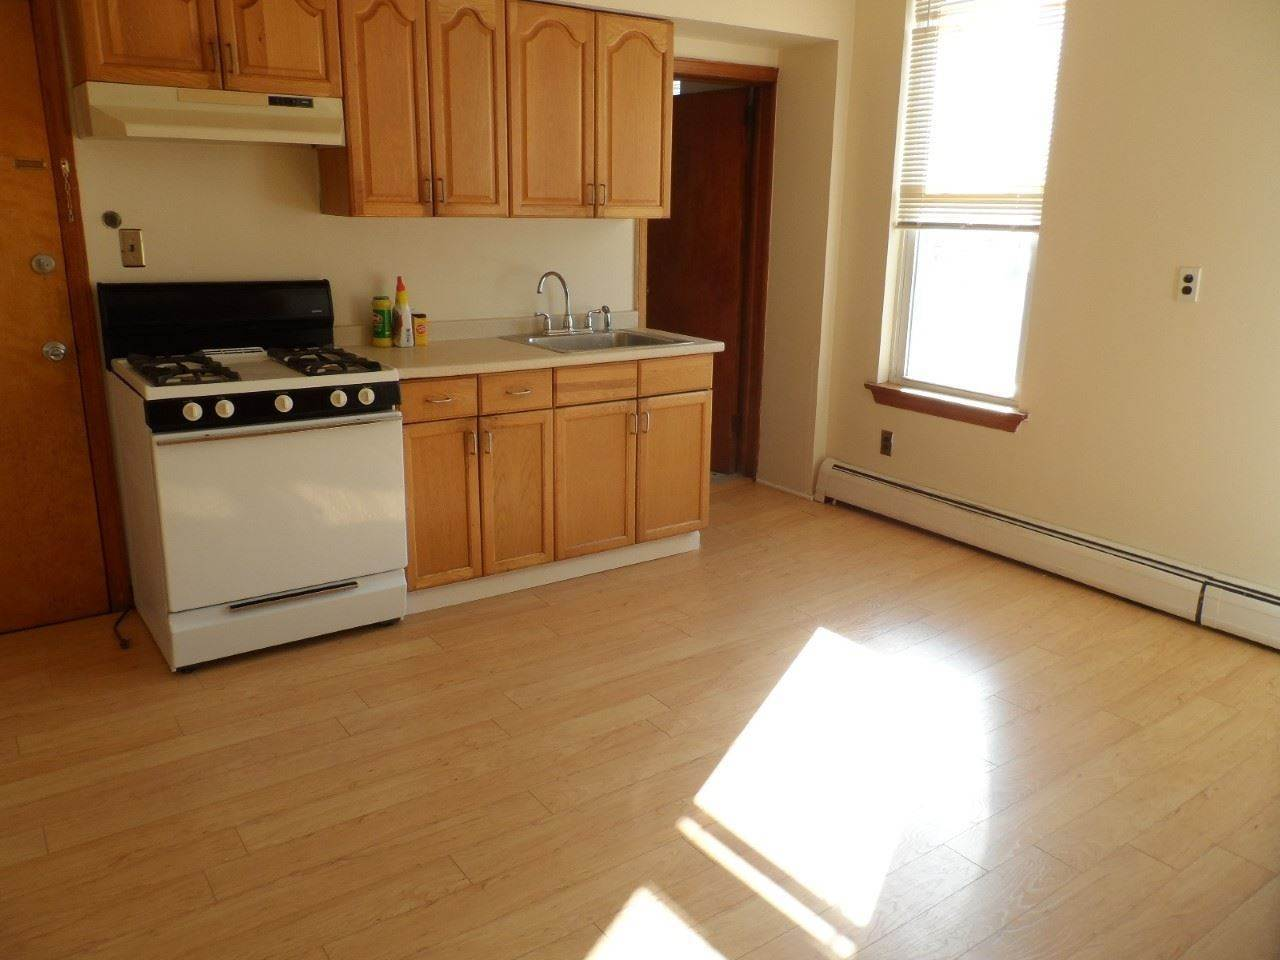 2. Single Family Home for Rent at 545 NEWARK AVENUE Jersey City, New Jersey, 07306 United States